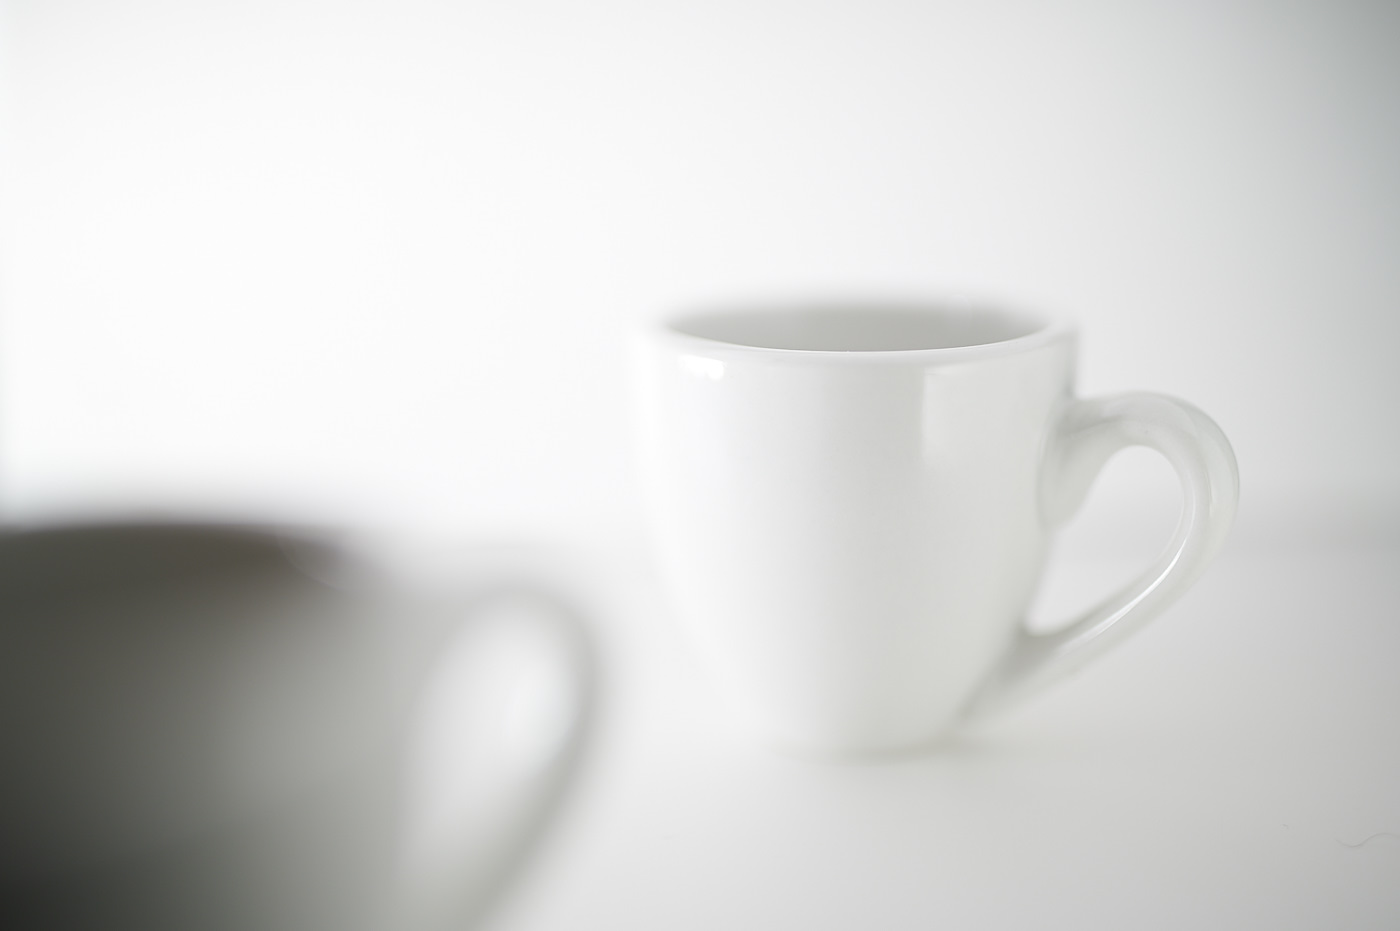 espresso coffee cup on white